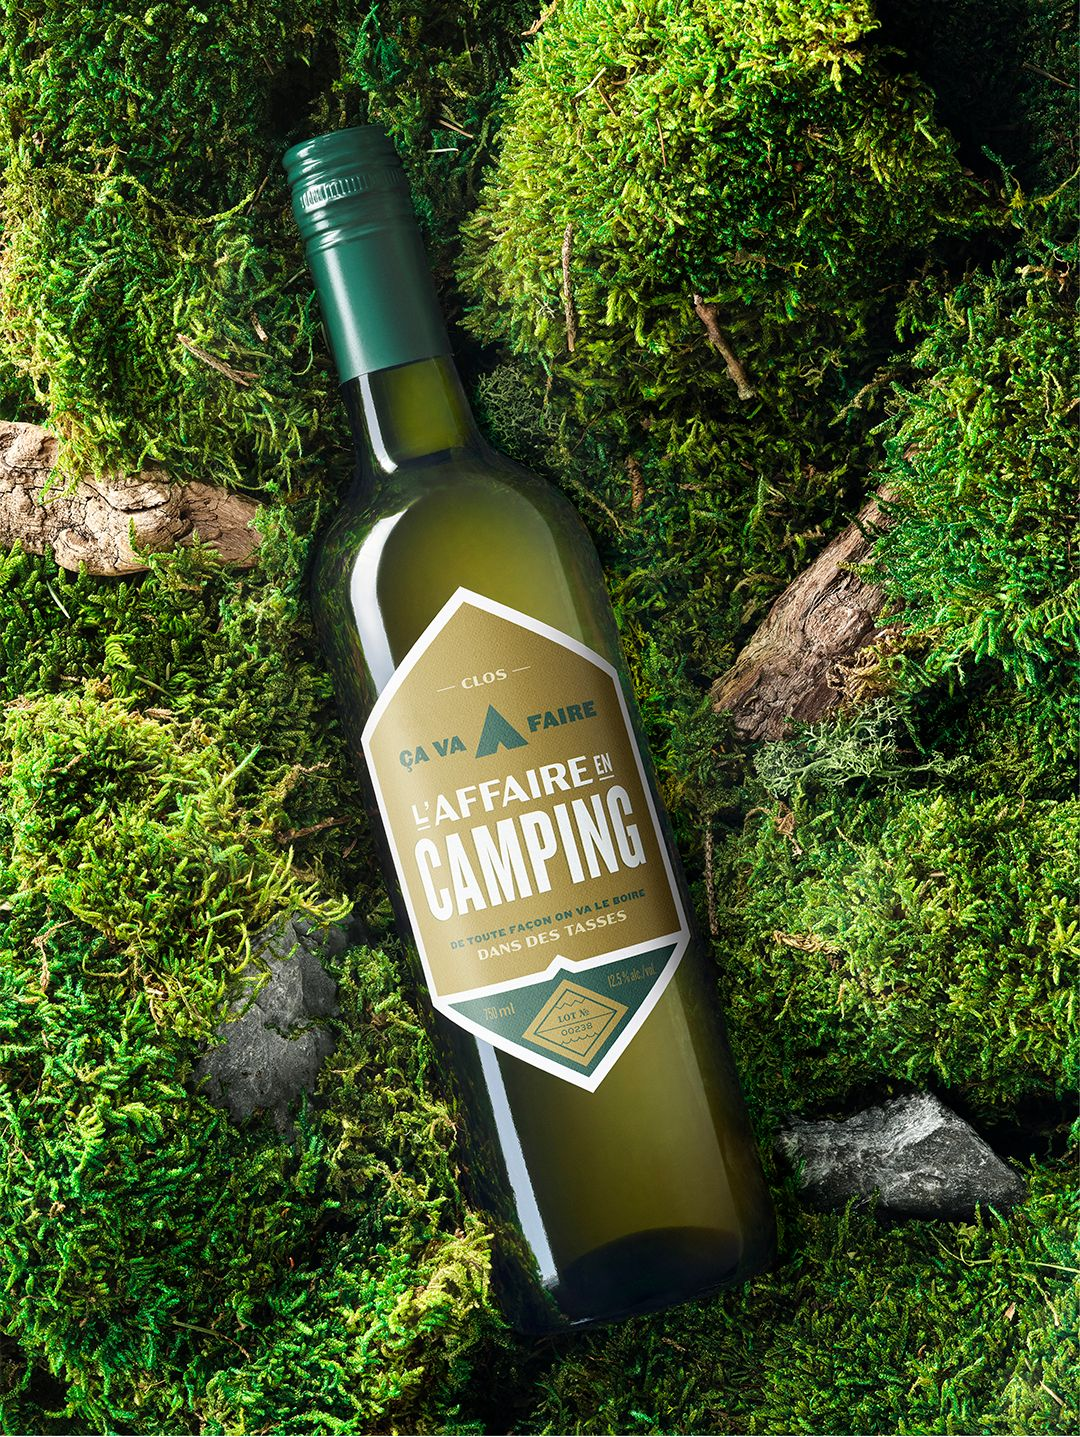 wine bottle on moss and wood photographed by Mathieu Levesque for the SAQ Make Inspired Choices campaign